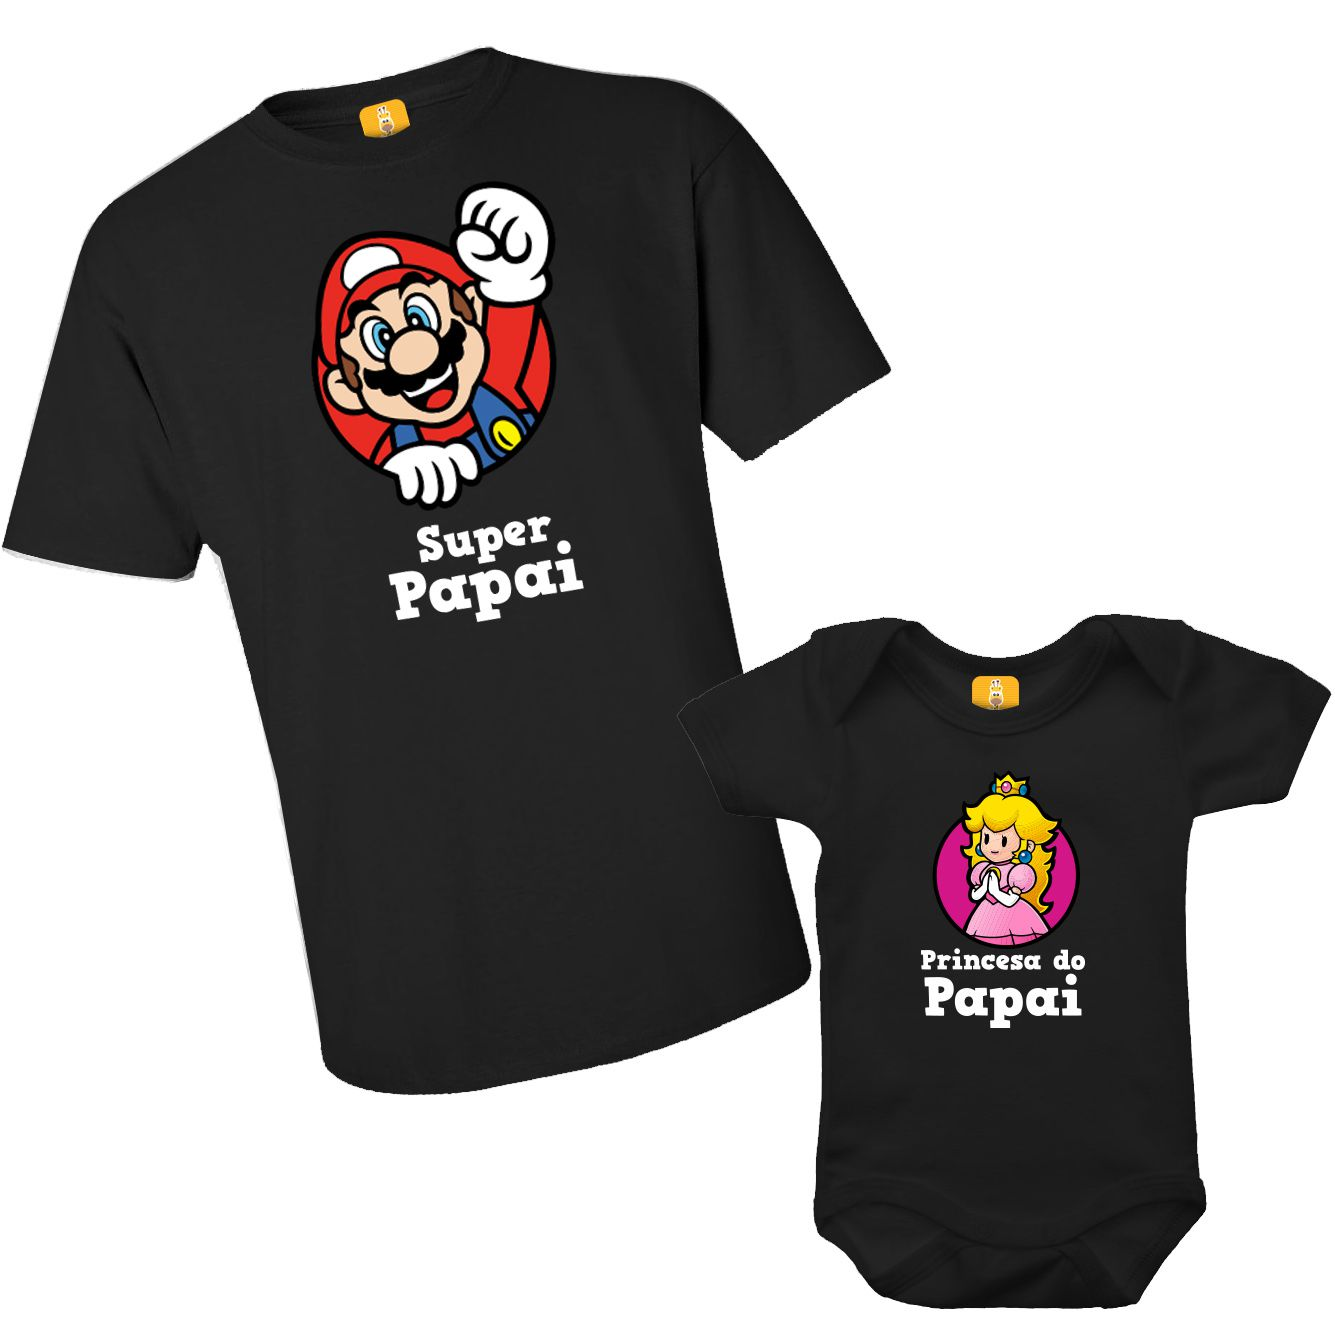 Kit camiseta e body - Super Papai e princesa do papai